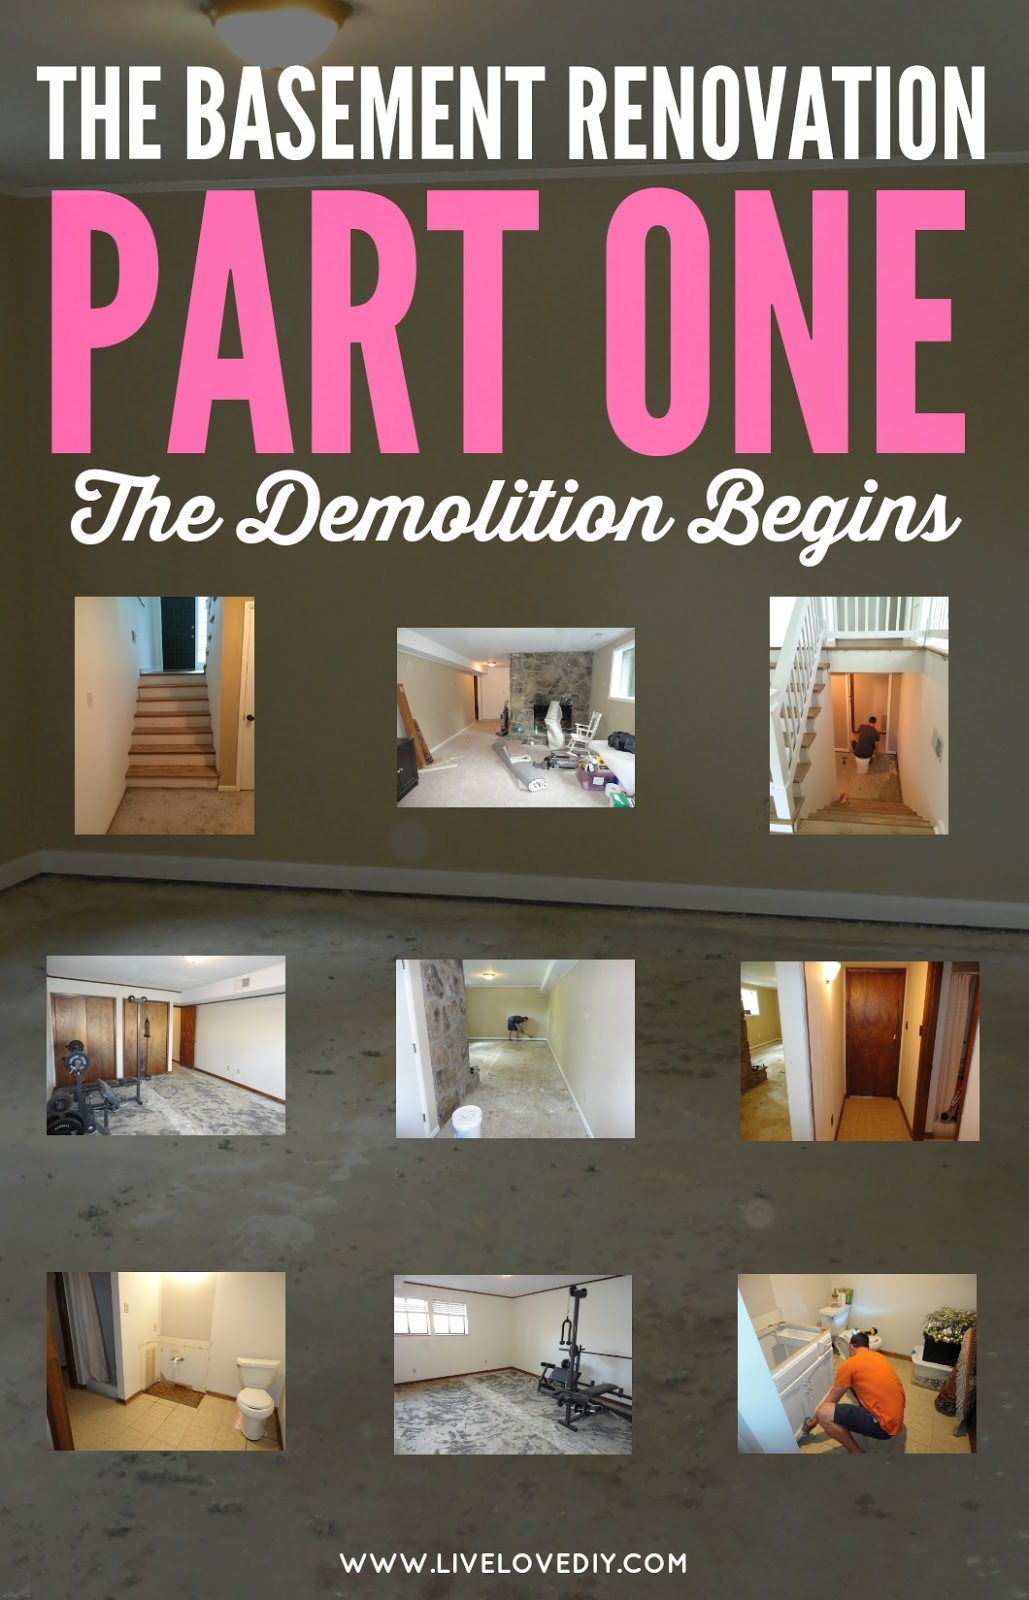 The Basement Renovation, Part One: The Demolition Begins!